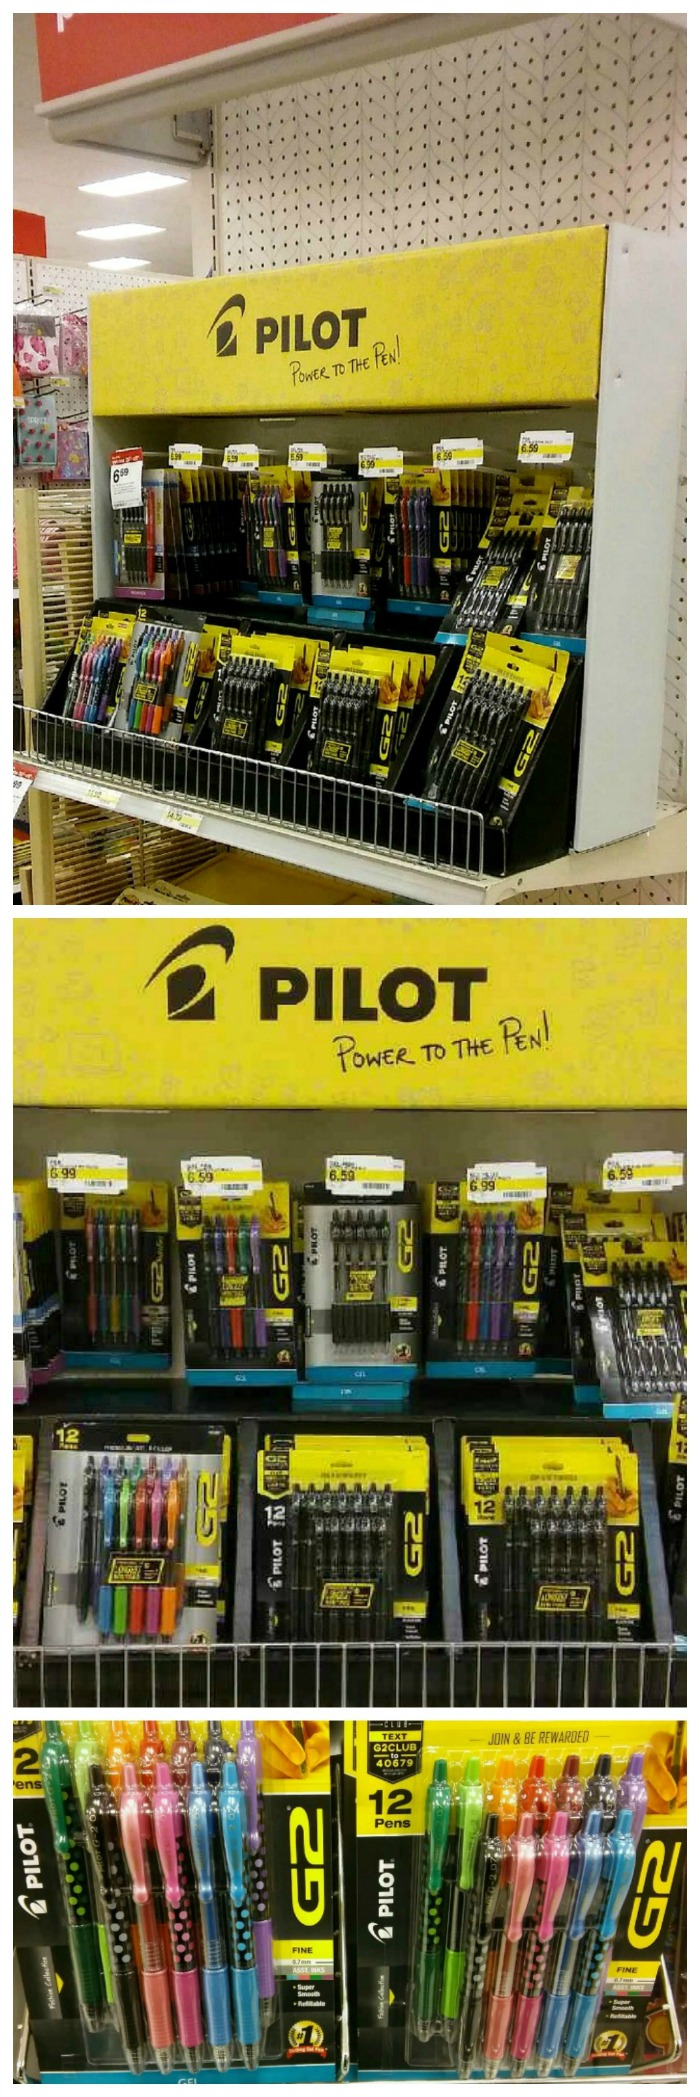 Target has a special Pilot G2 pens end cap display